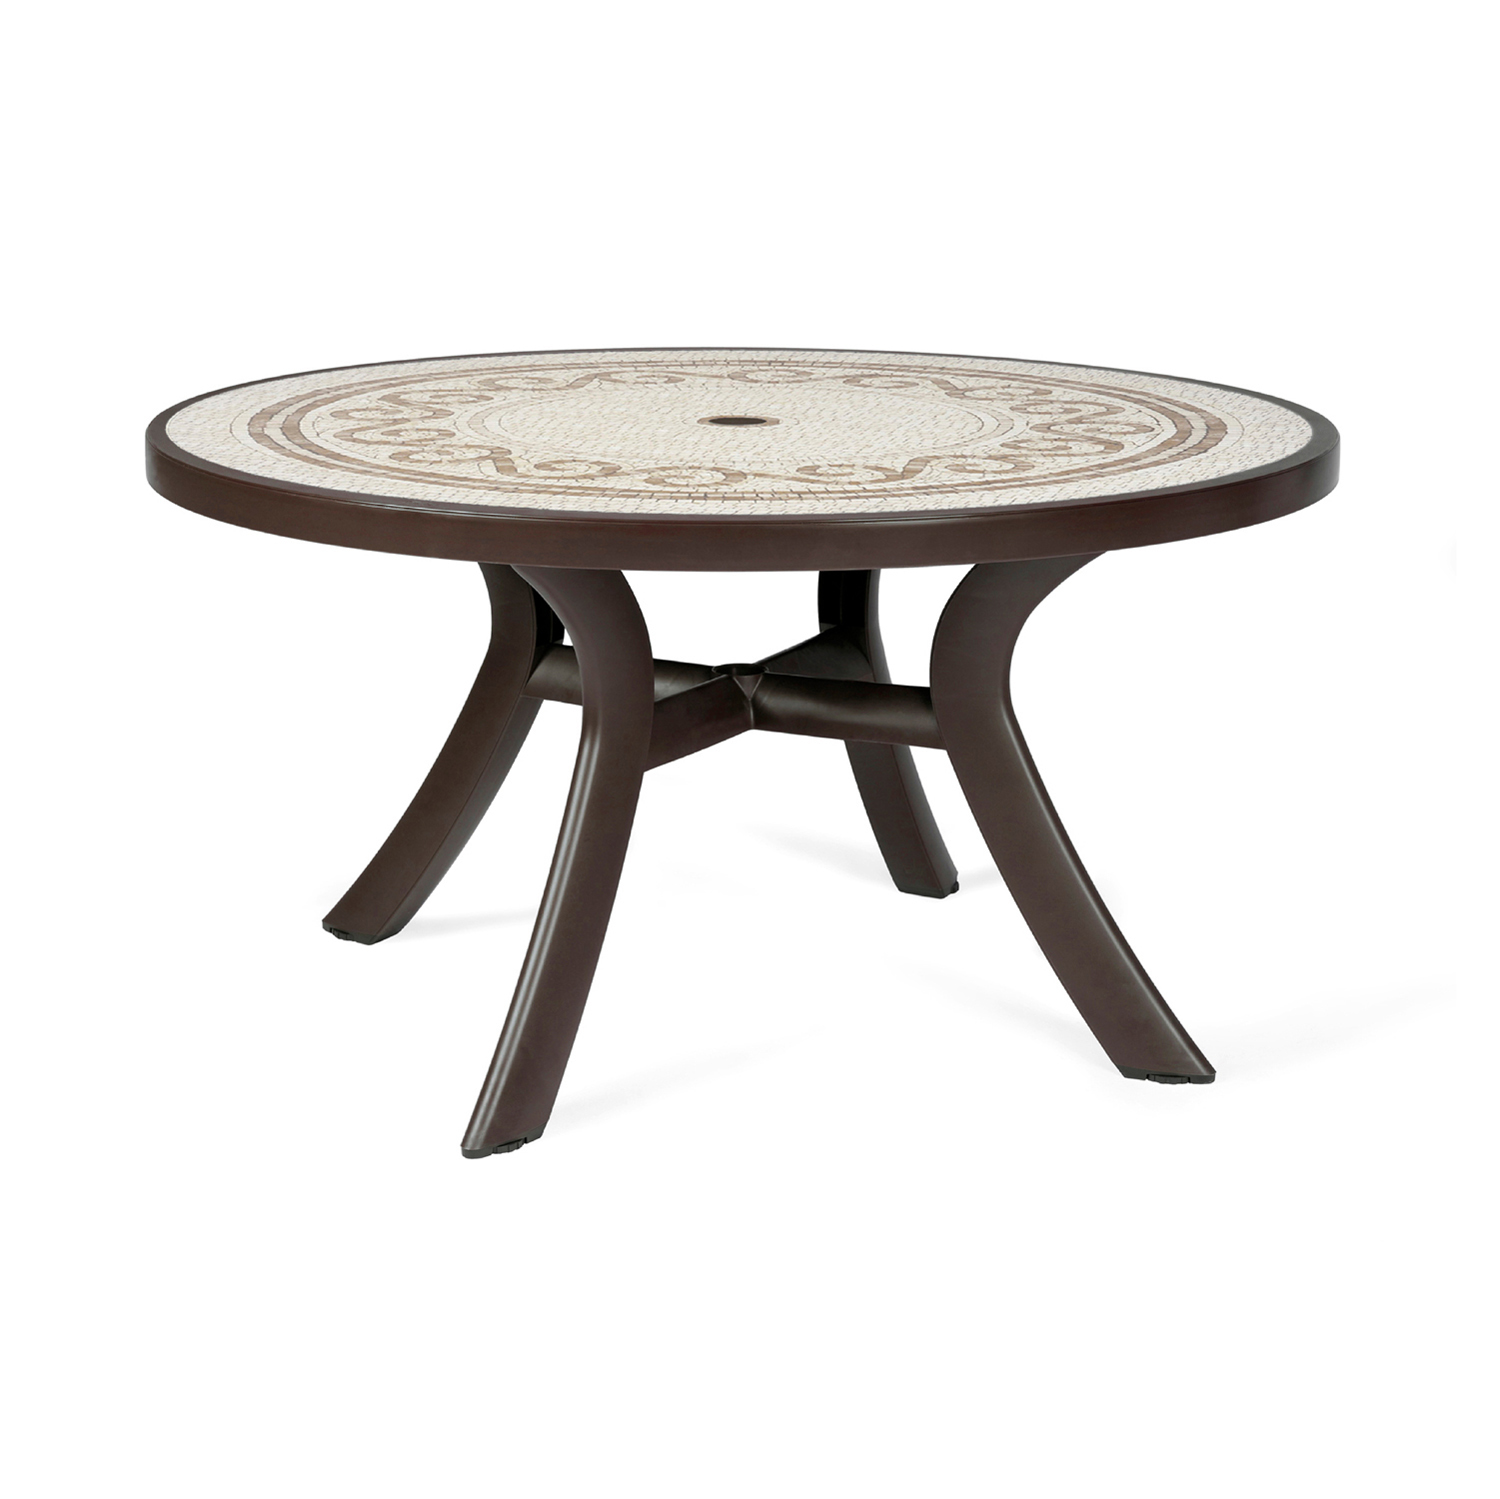 Toscana 120 table coffee ravenna top Toscana coffee table